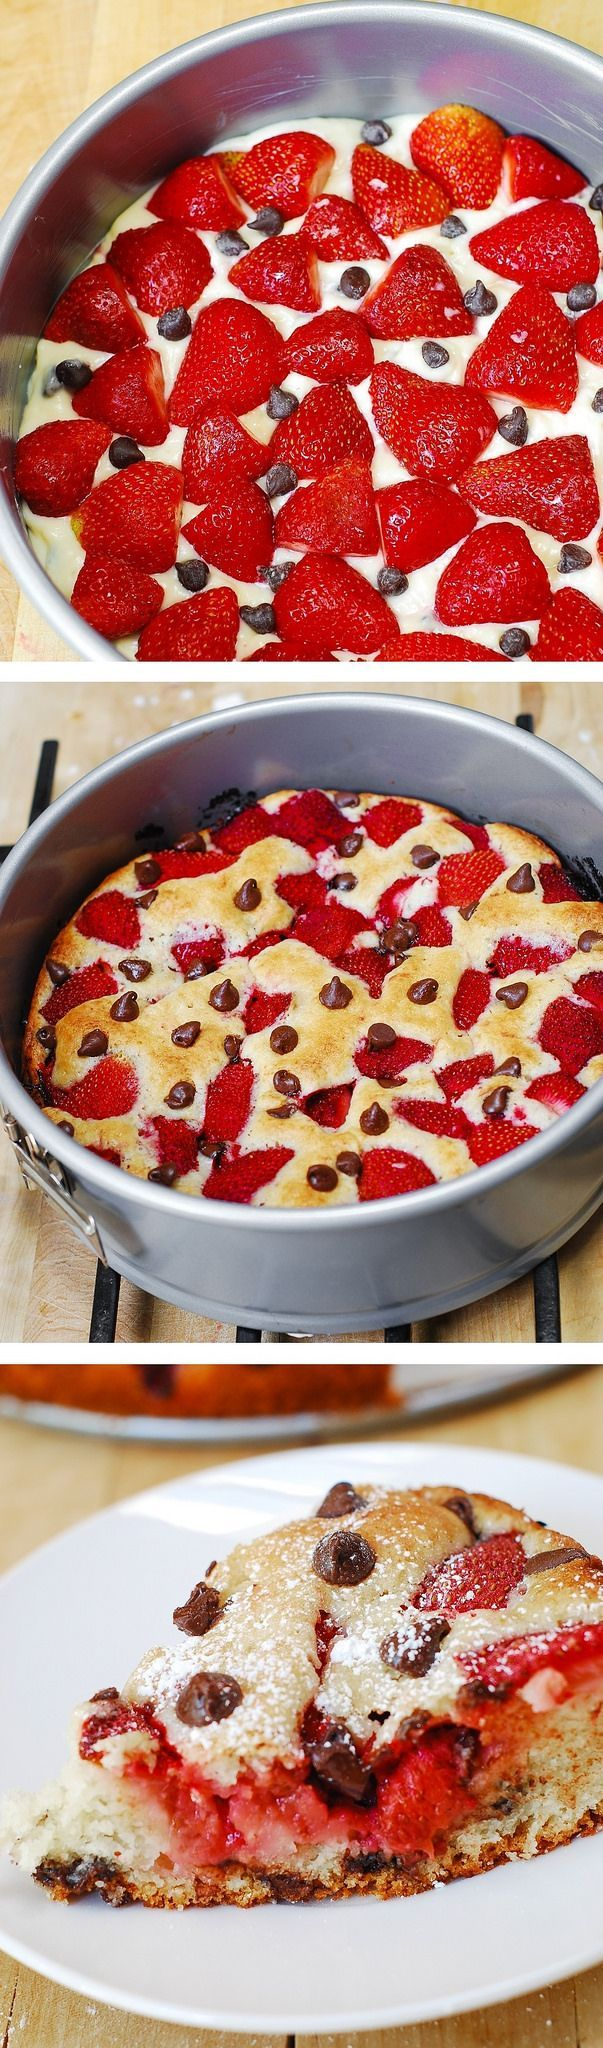 Strawberry chocolate chip cake.. Made this today for Father's Day. Followed the recipe exaclty... YUM